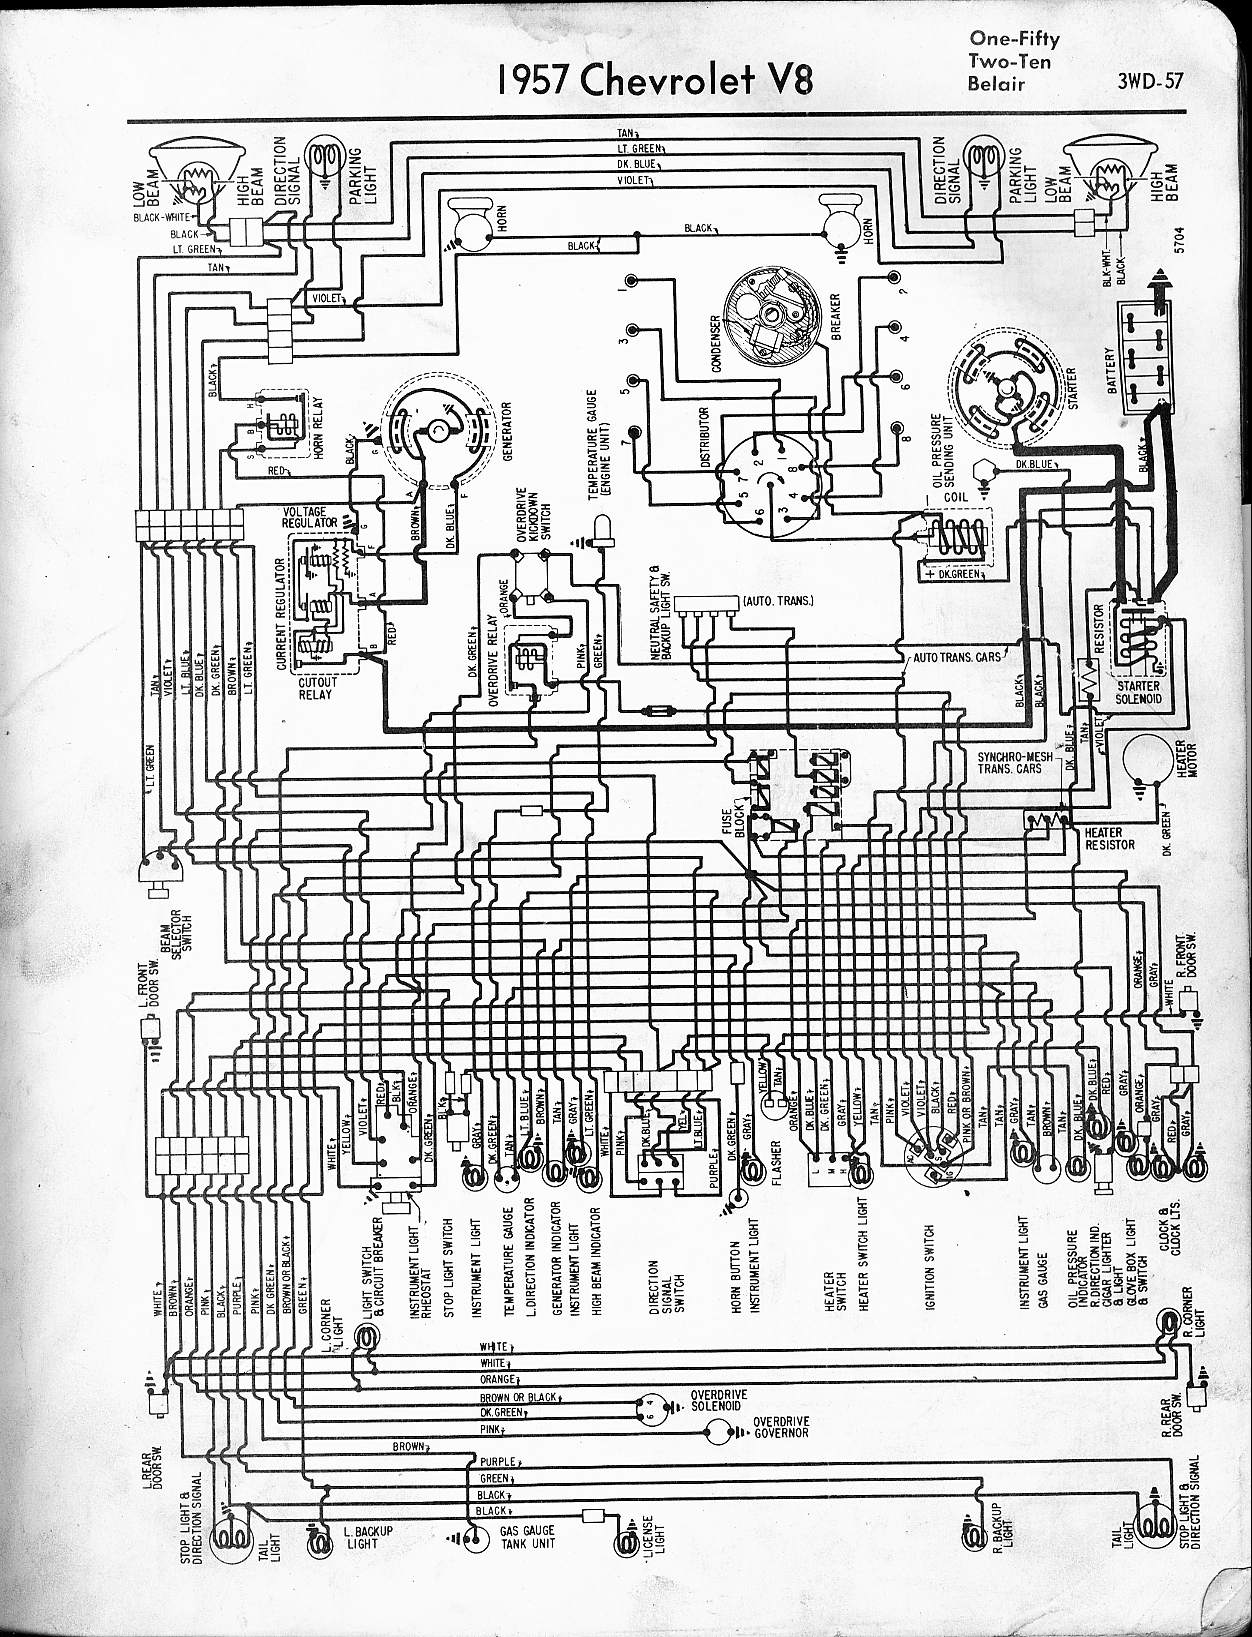 MWireChev57_3WD 057 57 65 chevy wiring diagrams chevy wiring diagrams trucks at edmiracle.co